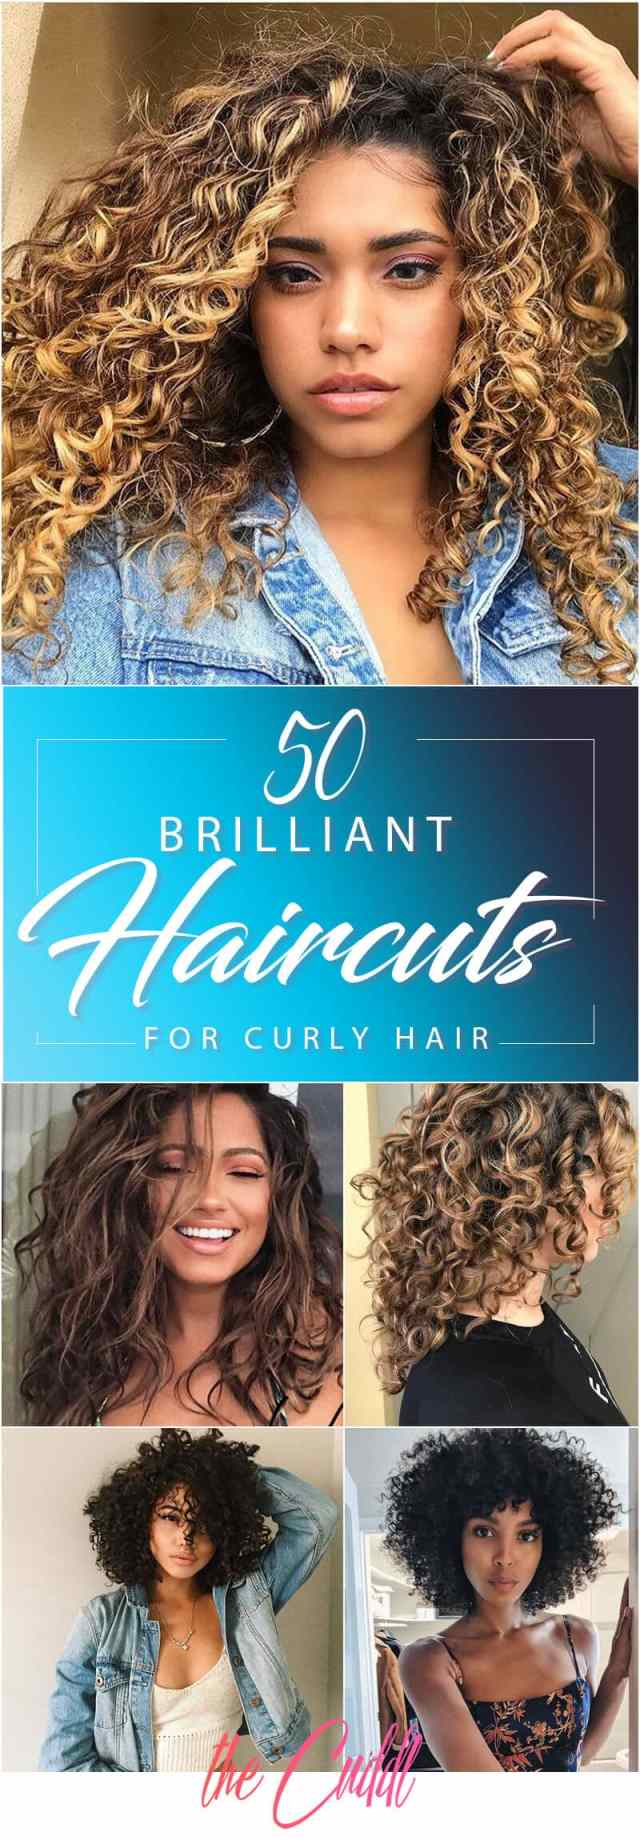 50 brilliant haircuts for curly hairstyle 2019 (art, design